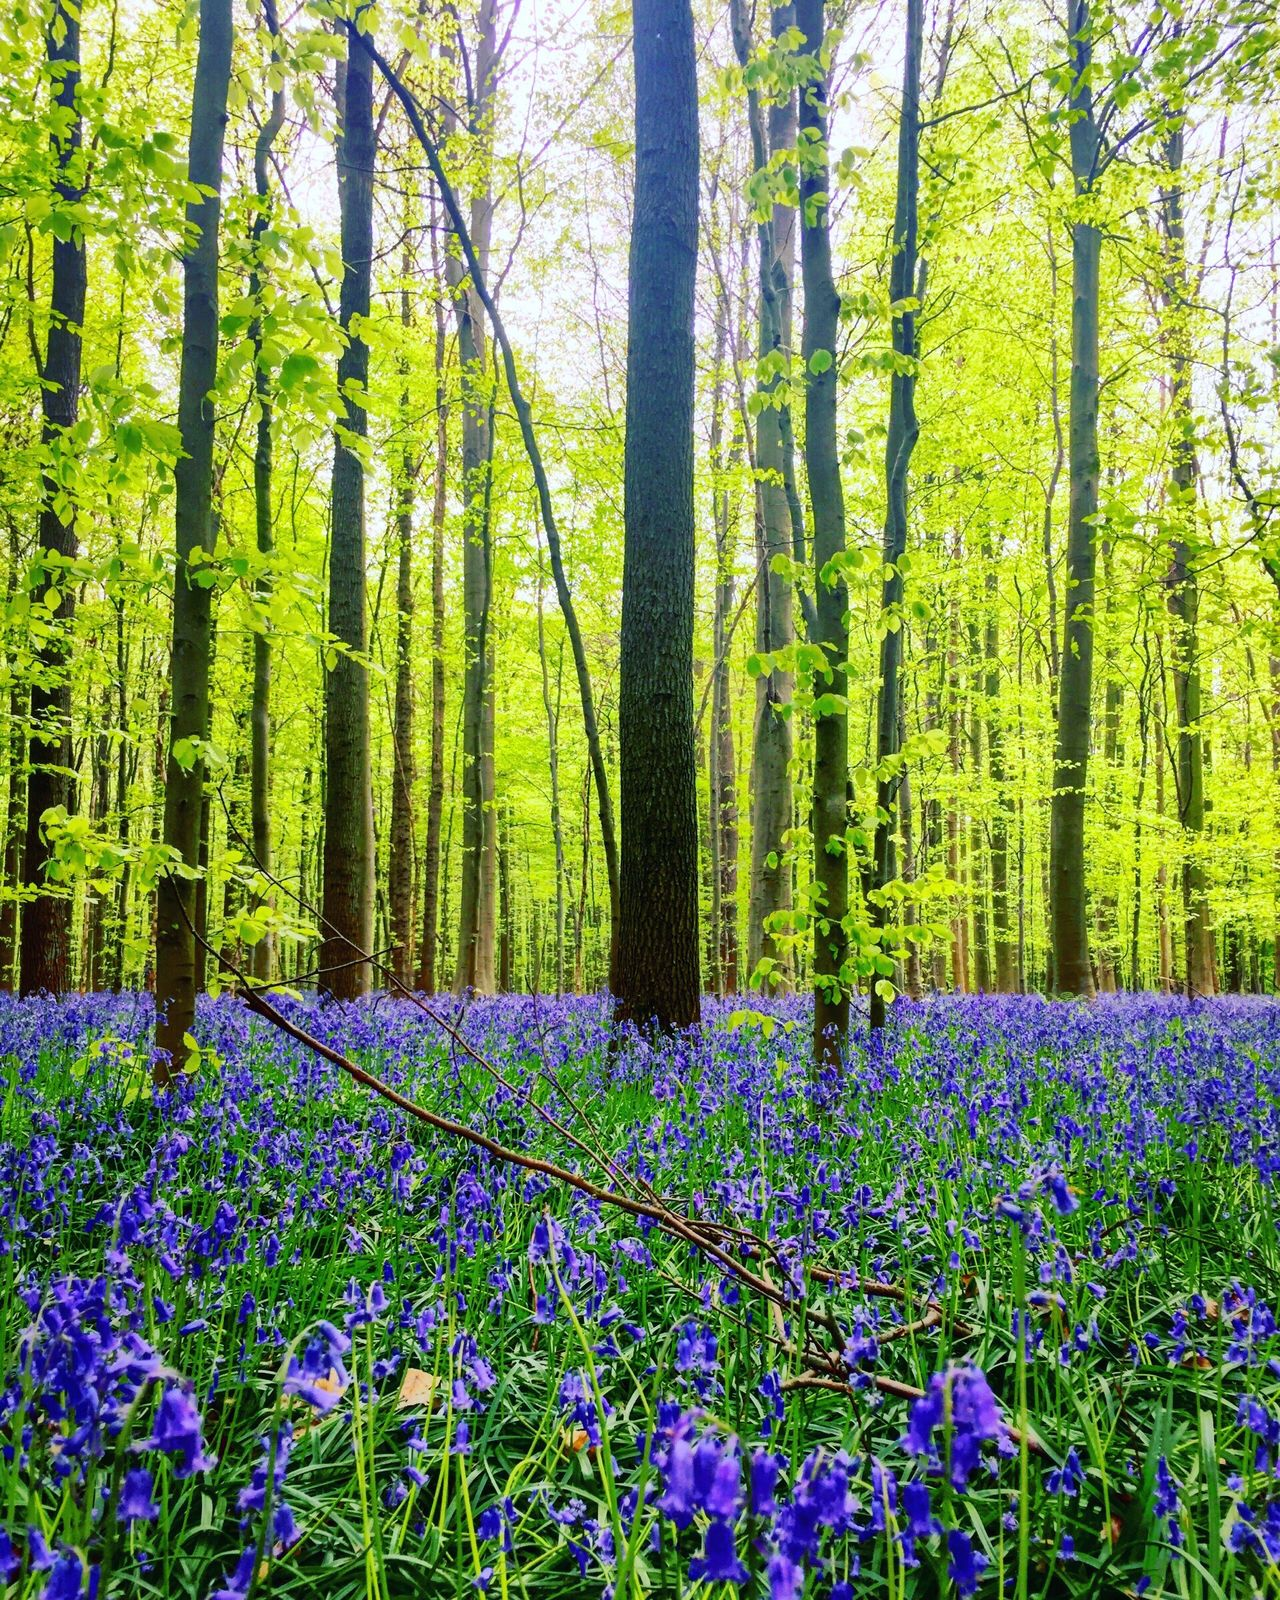 Millions of purple flowers in a forest Nature Growth Purple Flower Tree Forest Beauty In Nature Green Color No People Scenics Outdoors Day Lush Foliage Tree Trunk Plant Tranquility Landscape Fragility Freshness Flower Head